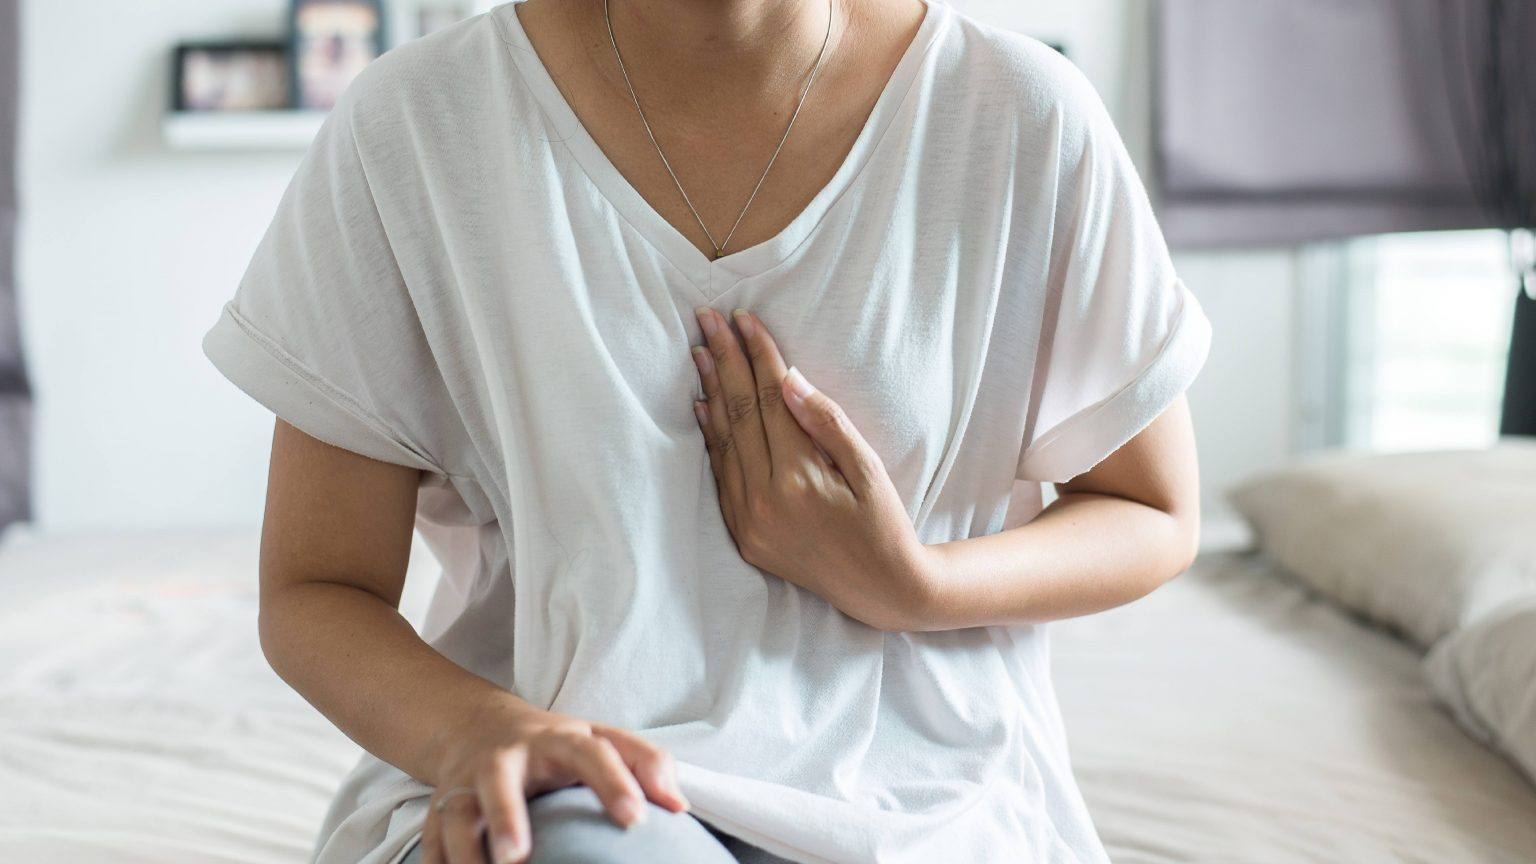 a-white-or-perhaps-a-Latina-woman-in-a-white-t-shirt-sitting-on-the-edge-of-bed-holding-her-hand-to-her-chest-out-of-concern-stress-worry-heart-pain-16x9-1-1536x864